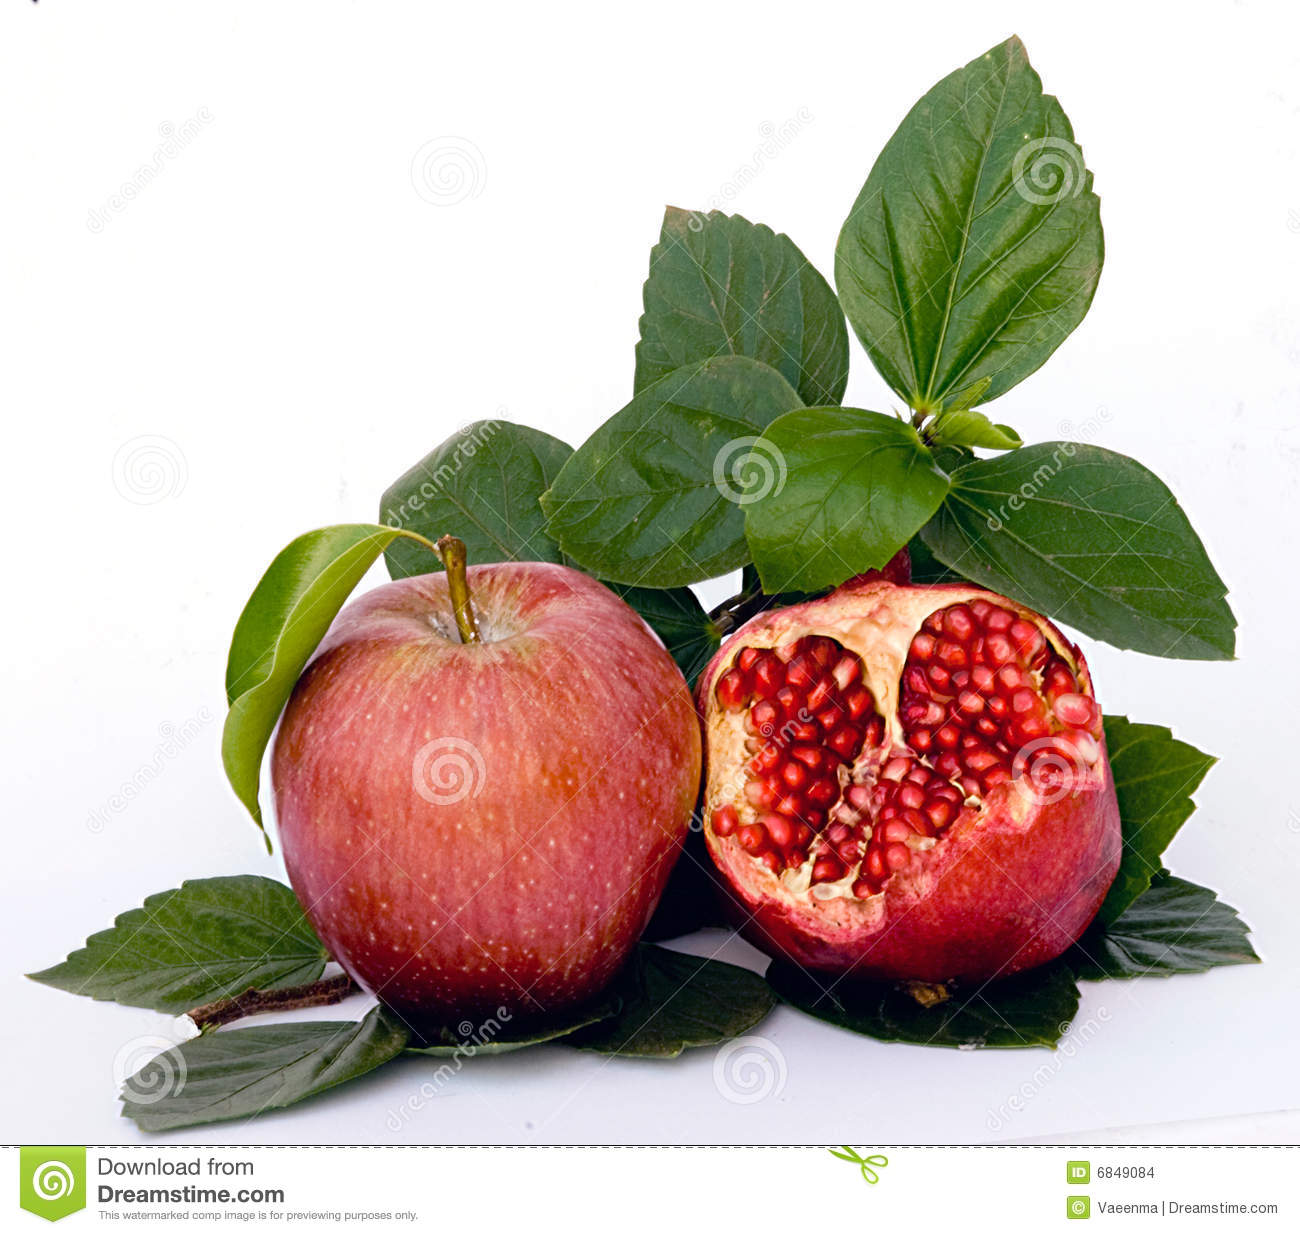 Pomegranate And Apple Stock Images - Image: 6849084